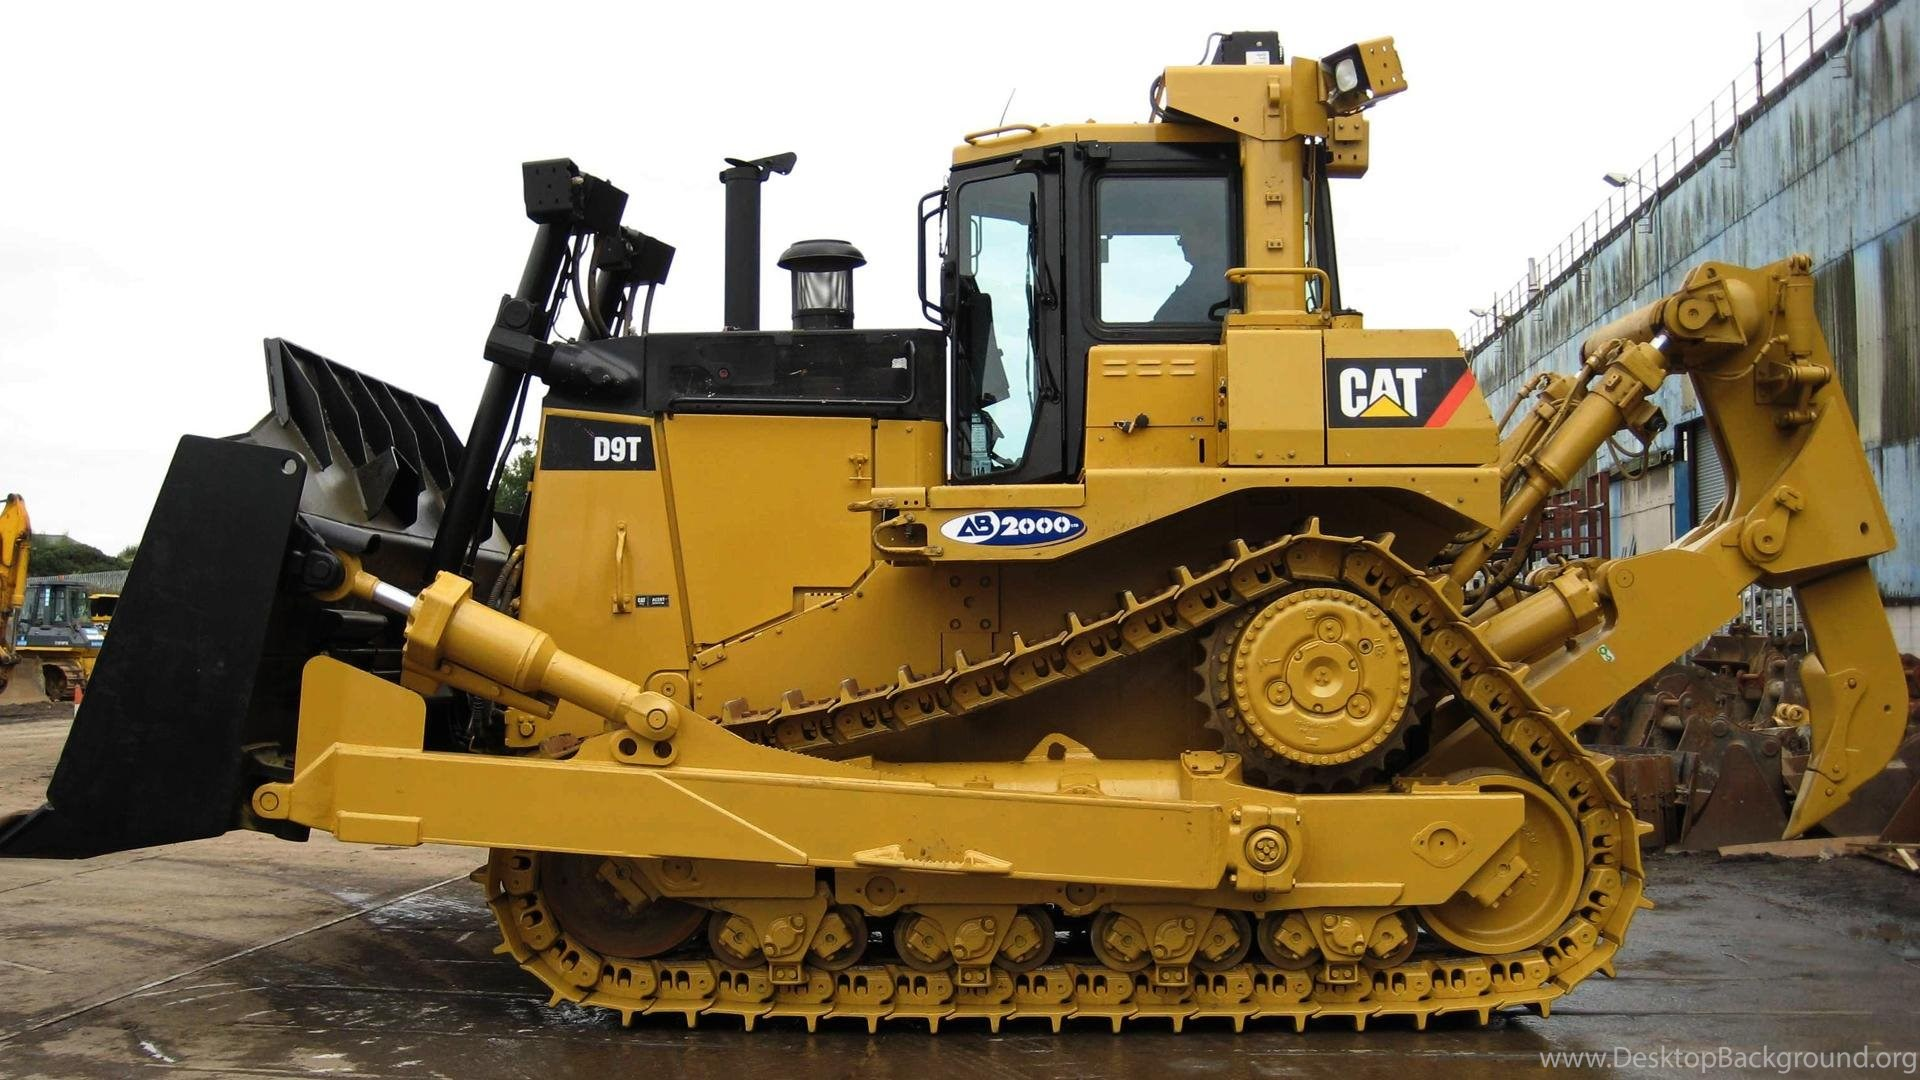 Caterpillar D9t Hd Wallpaper Get It Now Desktop Background